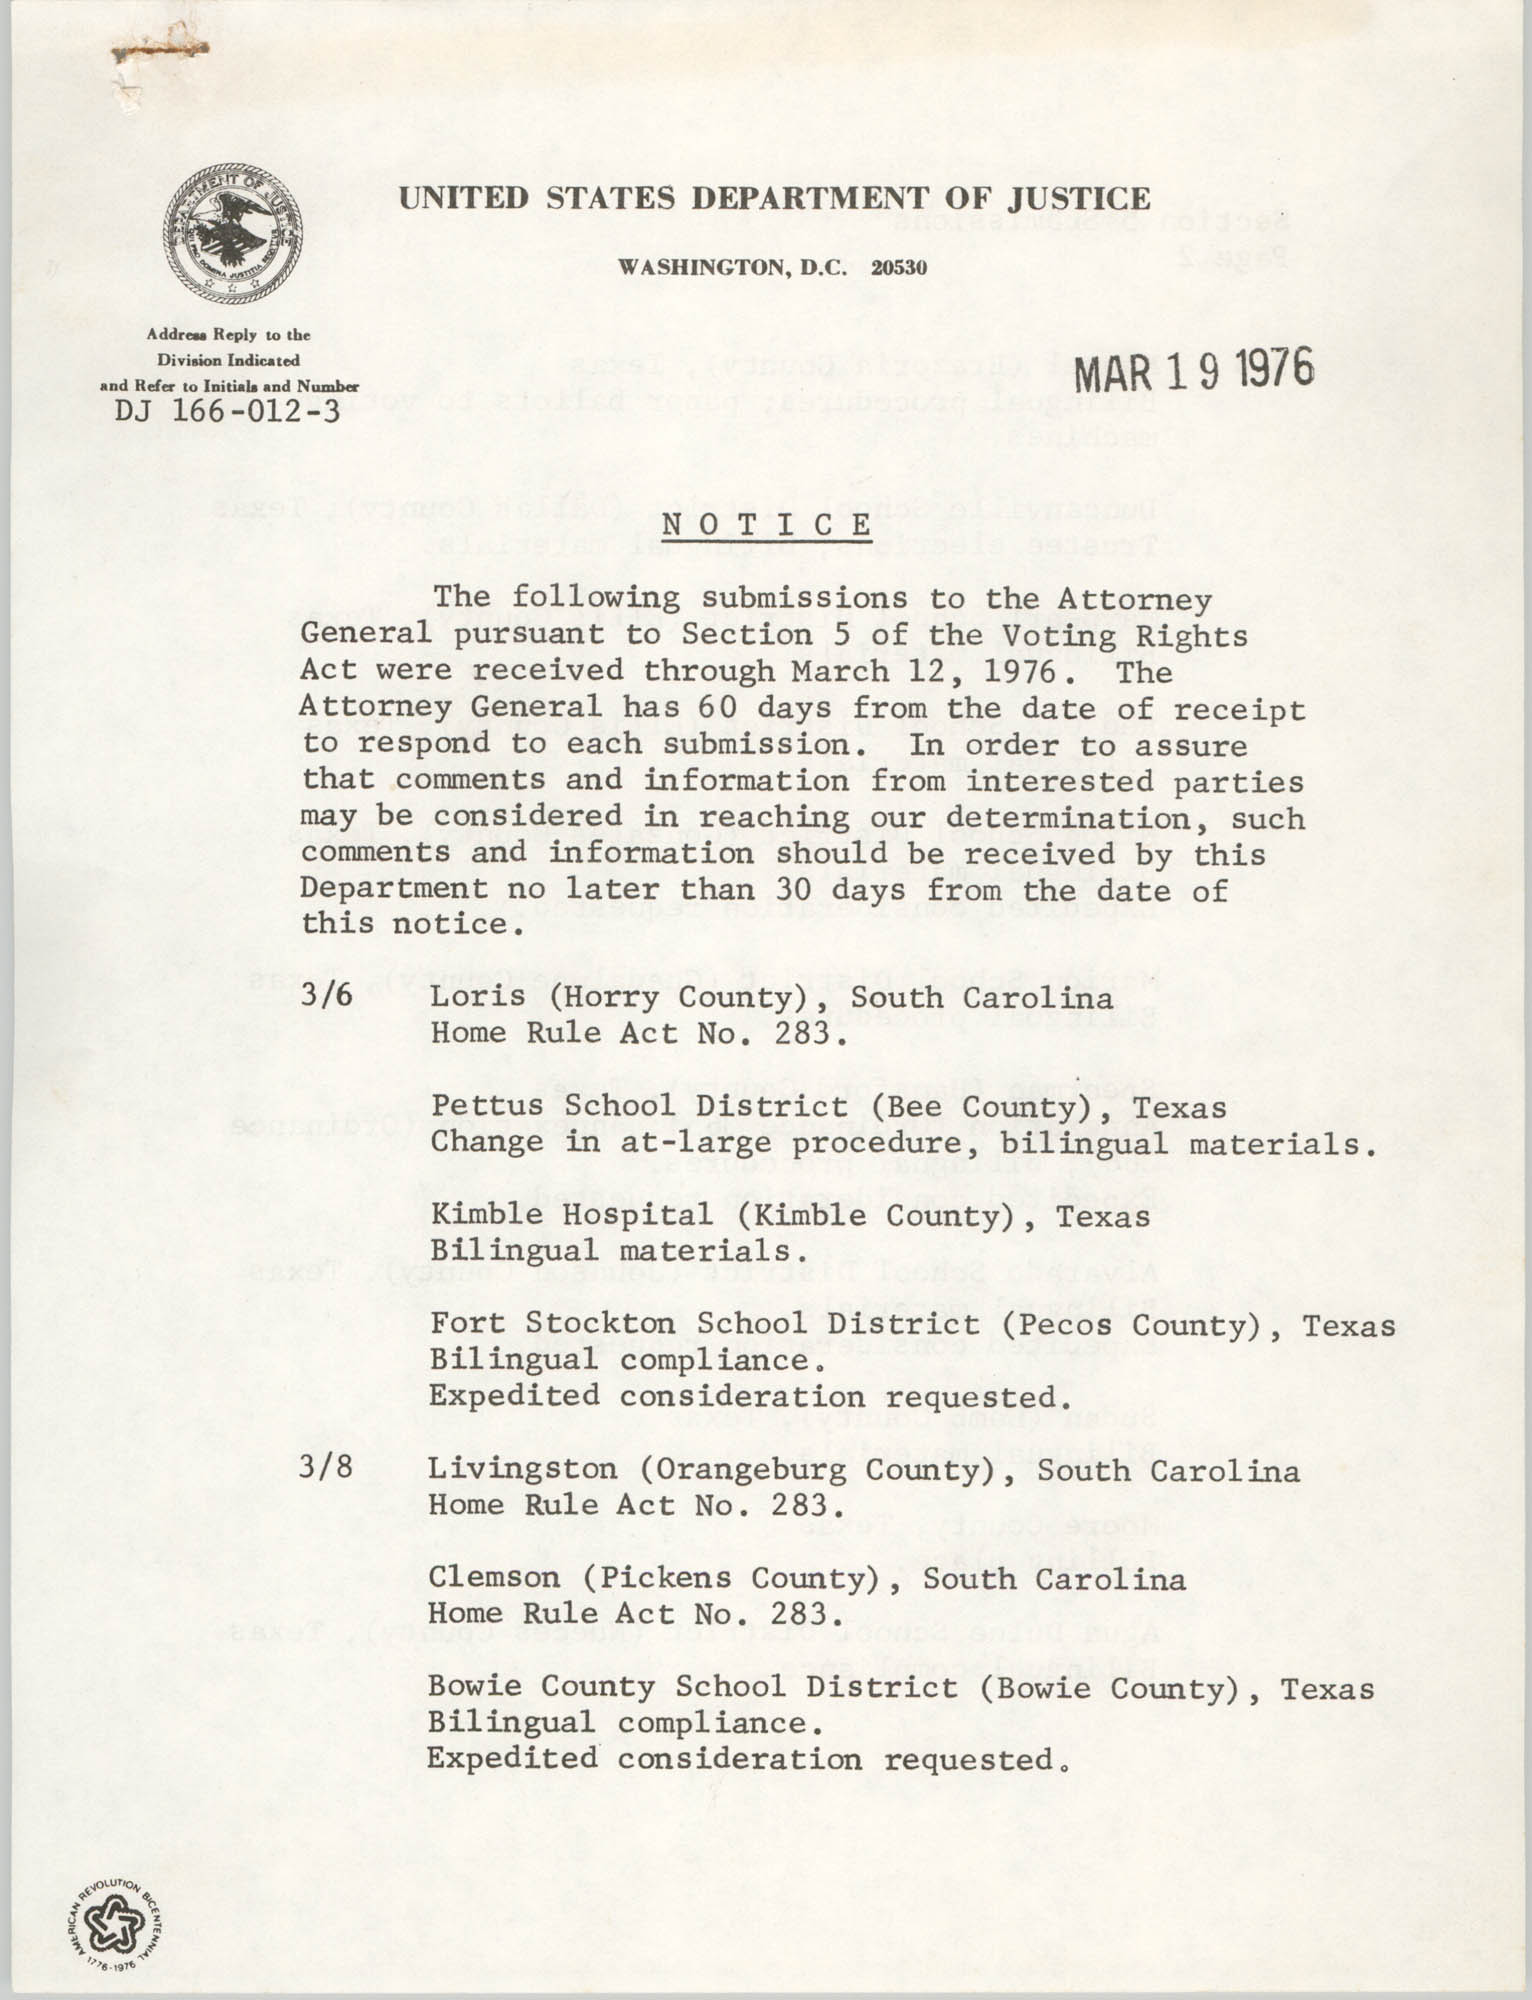 United States Department of Justice Notice, March 19, 1976, Page 1